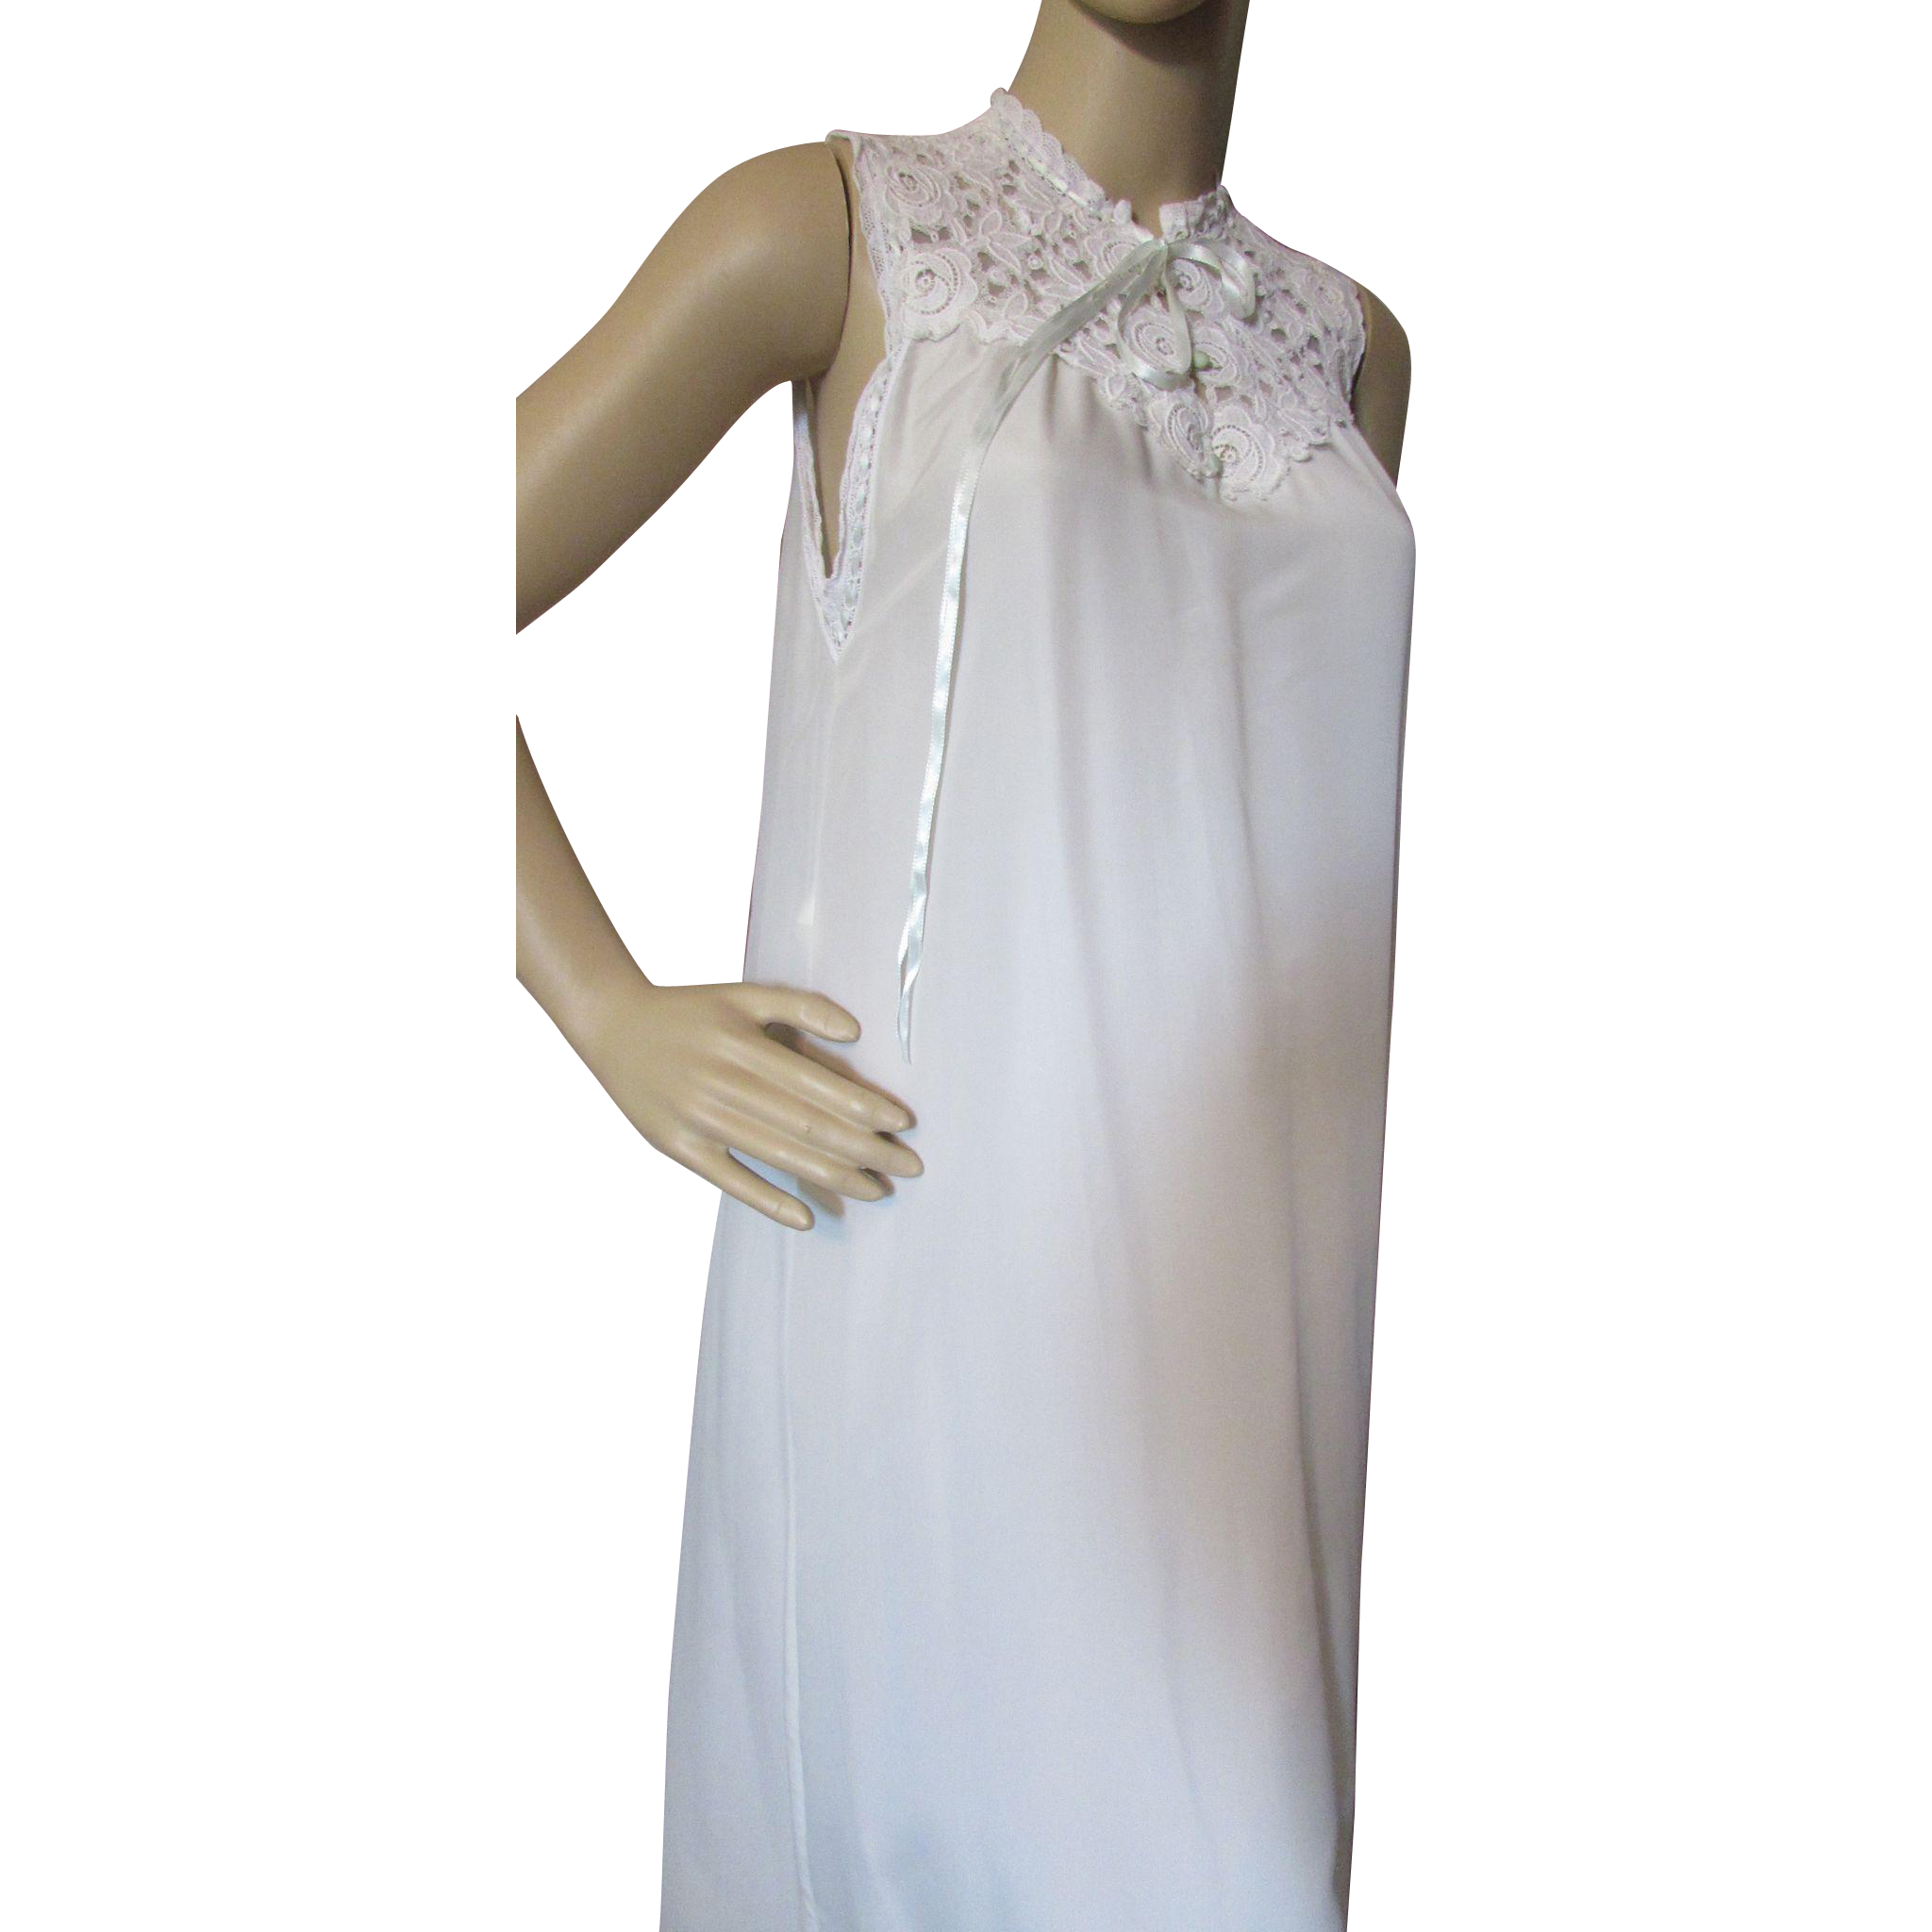 Saks Fifth Avenue Peignoir Set Robe and Nightgown in Cream with Lace and Ribbon Accents Size Petite